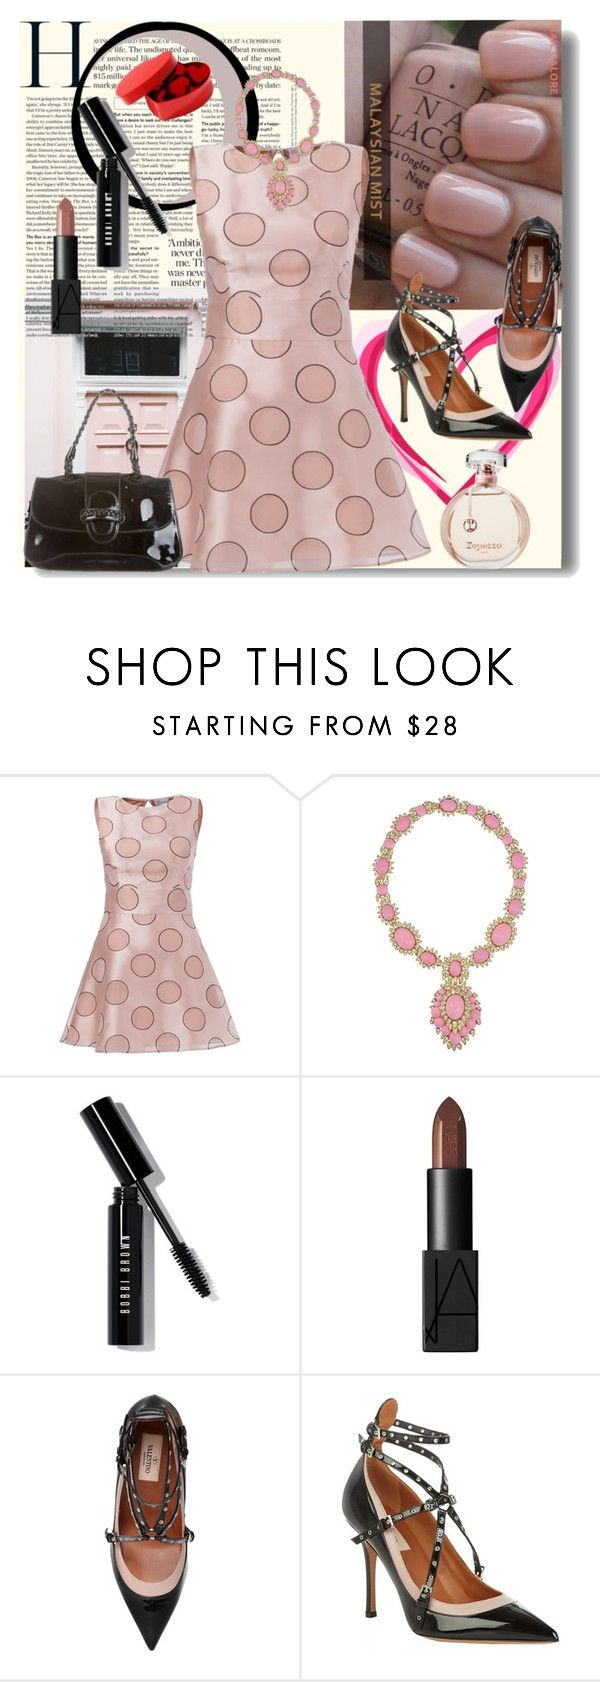 """HAPPY PINK VALENTINE'S DAY"" by whitewolf ❤ liked on Polyvore featuring RED Valentino, Ciner, Bobbi Brown Cosmetics, NARS Cosmetics and Valentino"